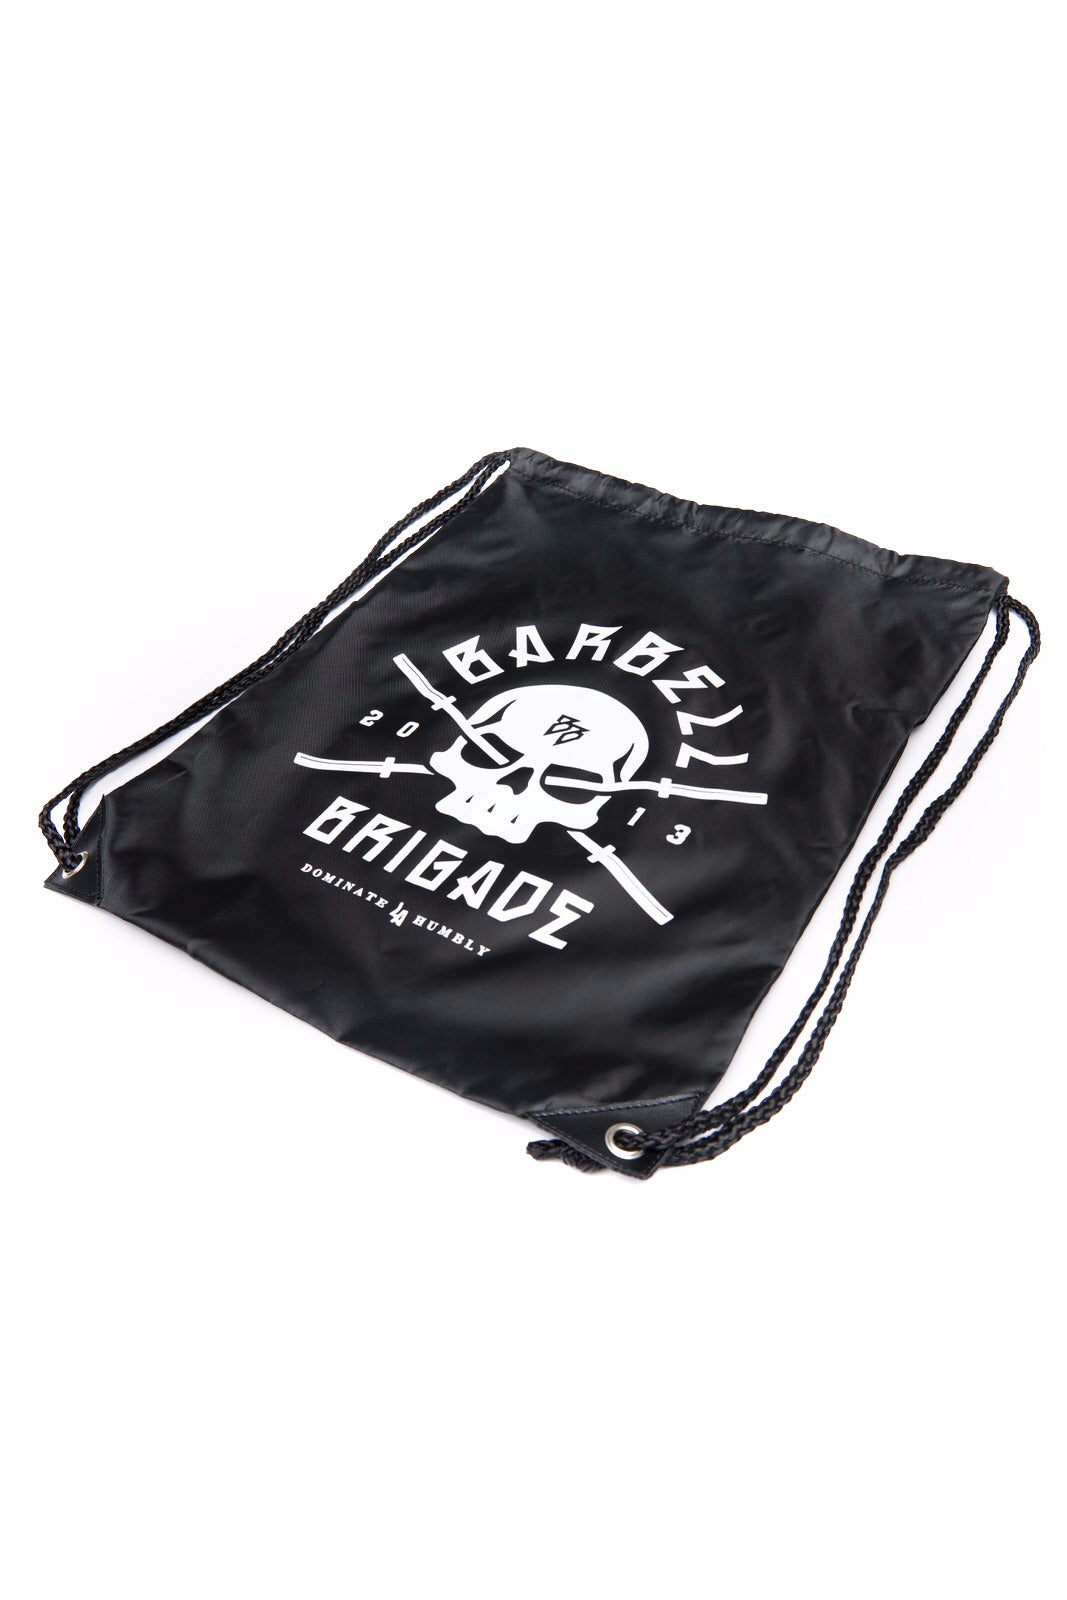 Barbell Brigade drawstring bag